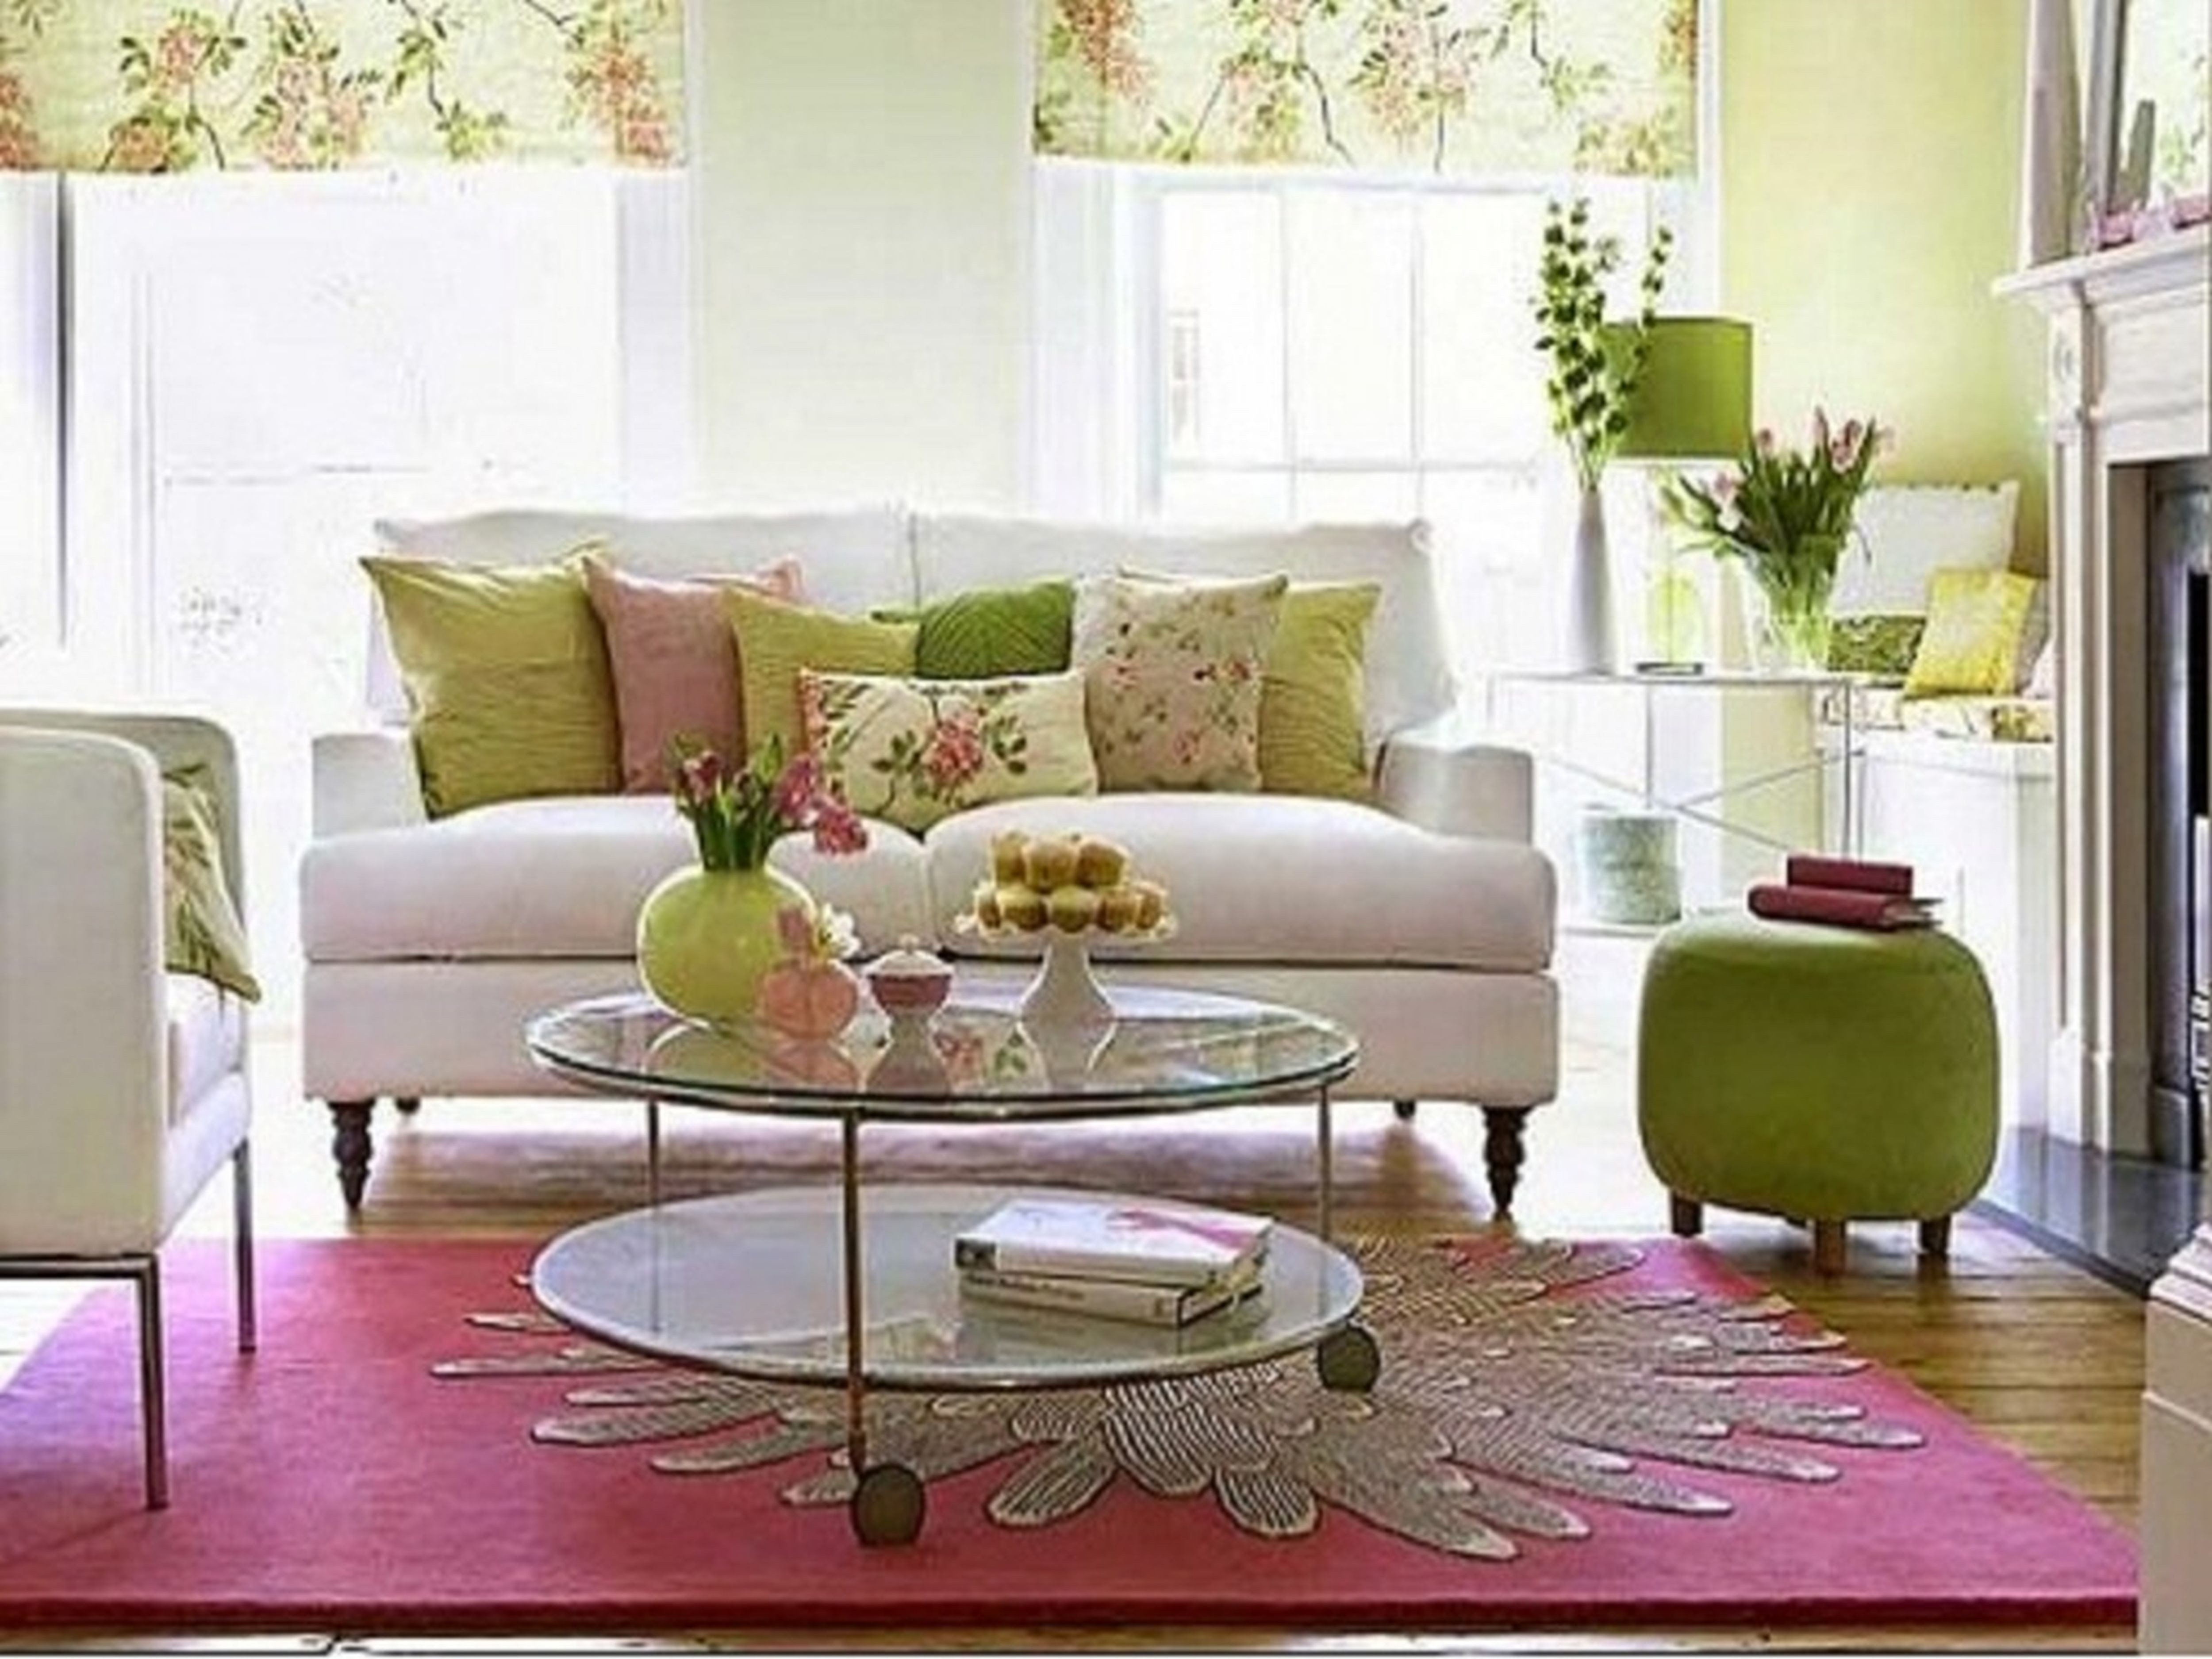 Apartment Living Room Decorating Beautiful 30 Cozy Home Decor Ideas for Your Home – the Wow Style